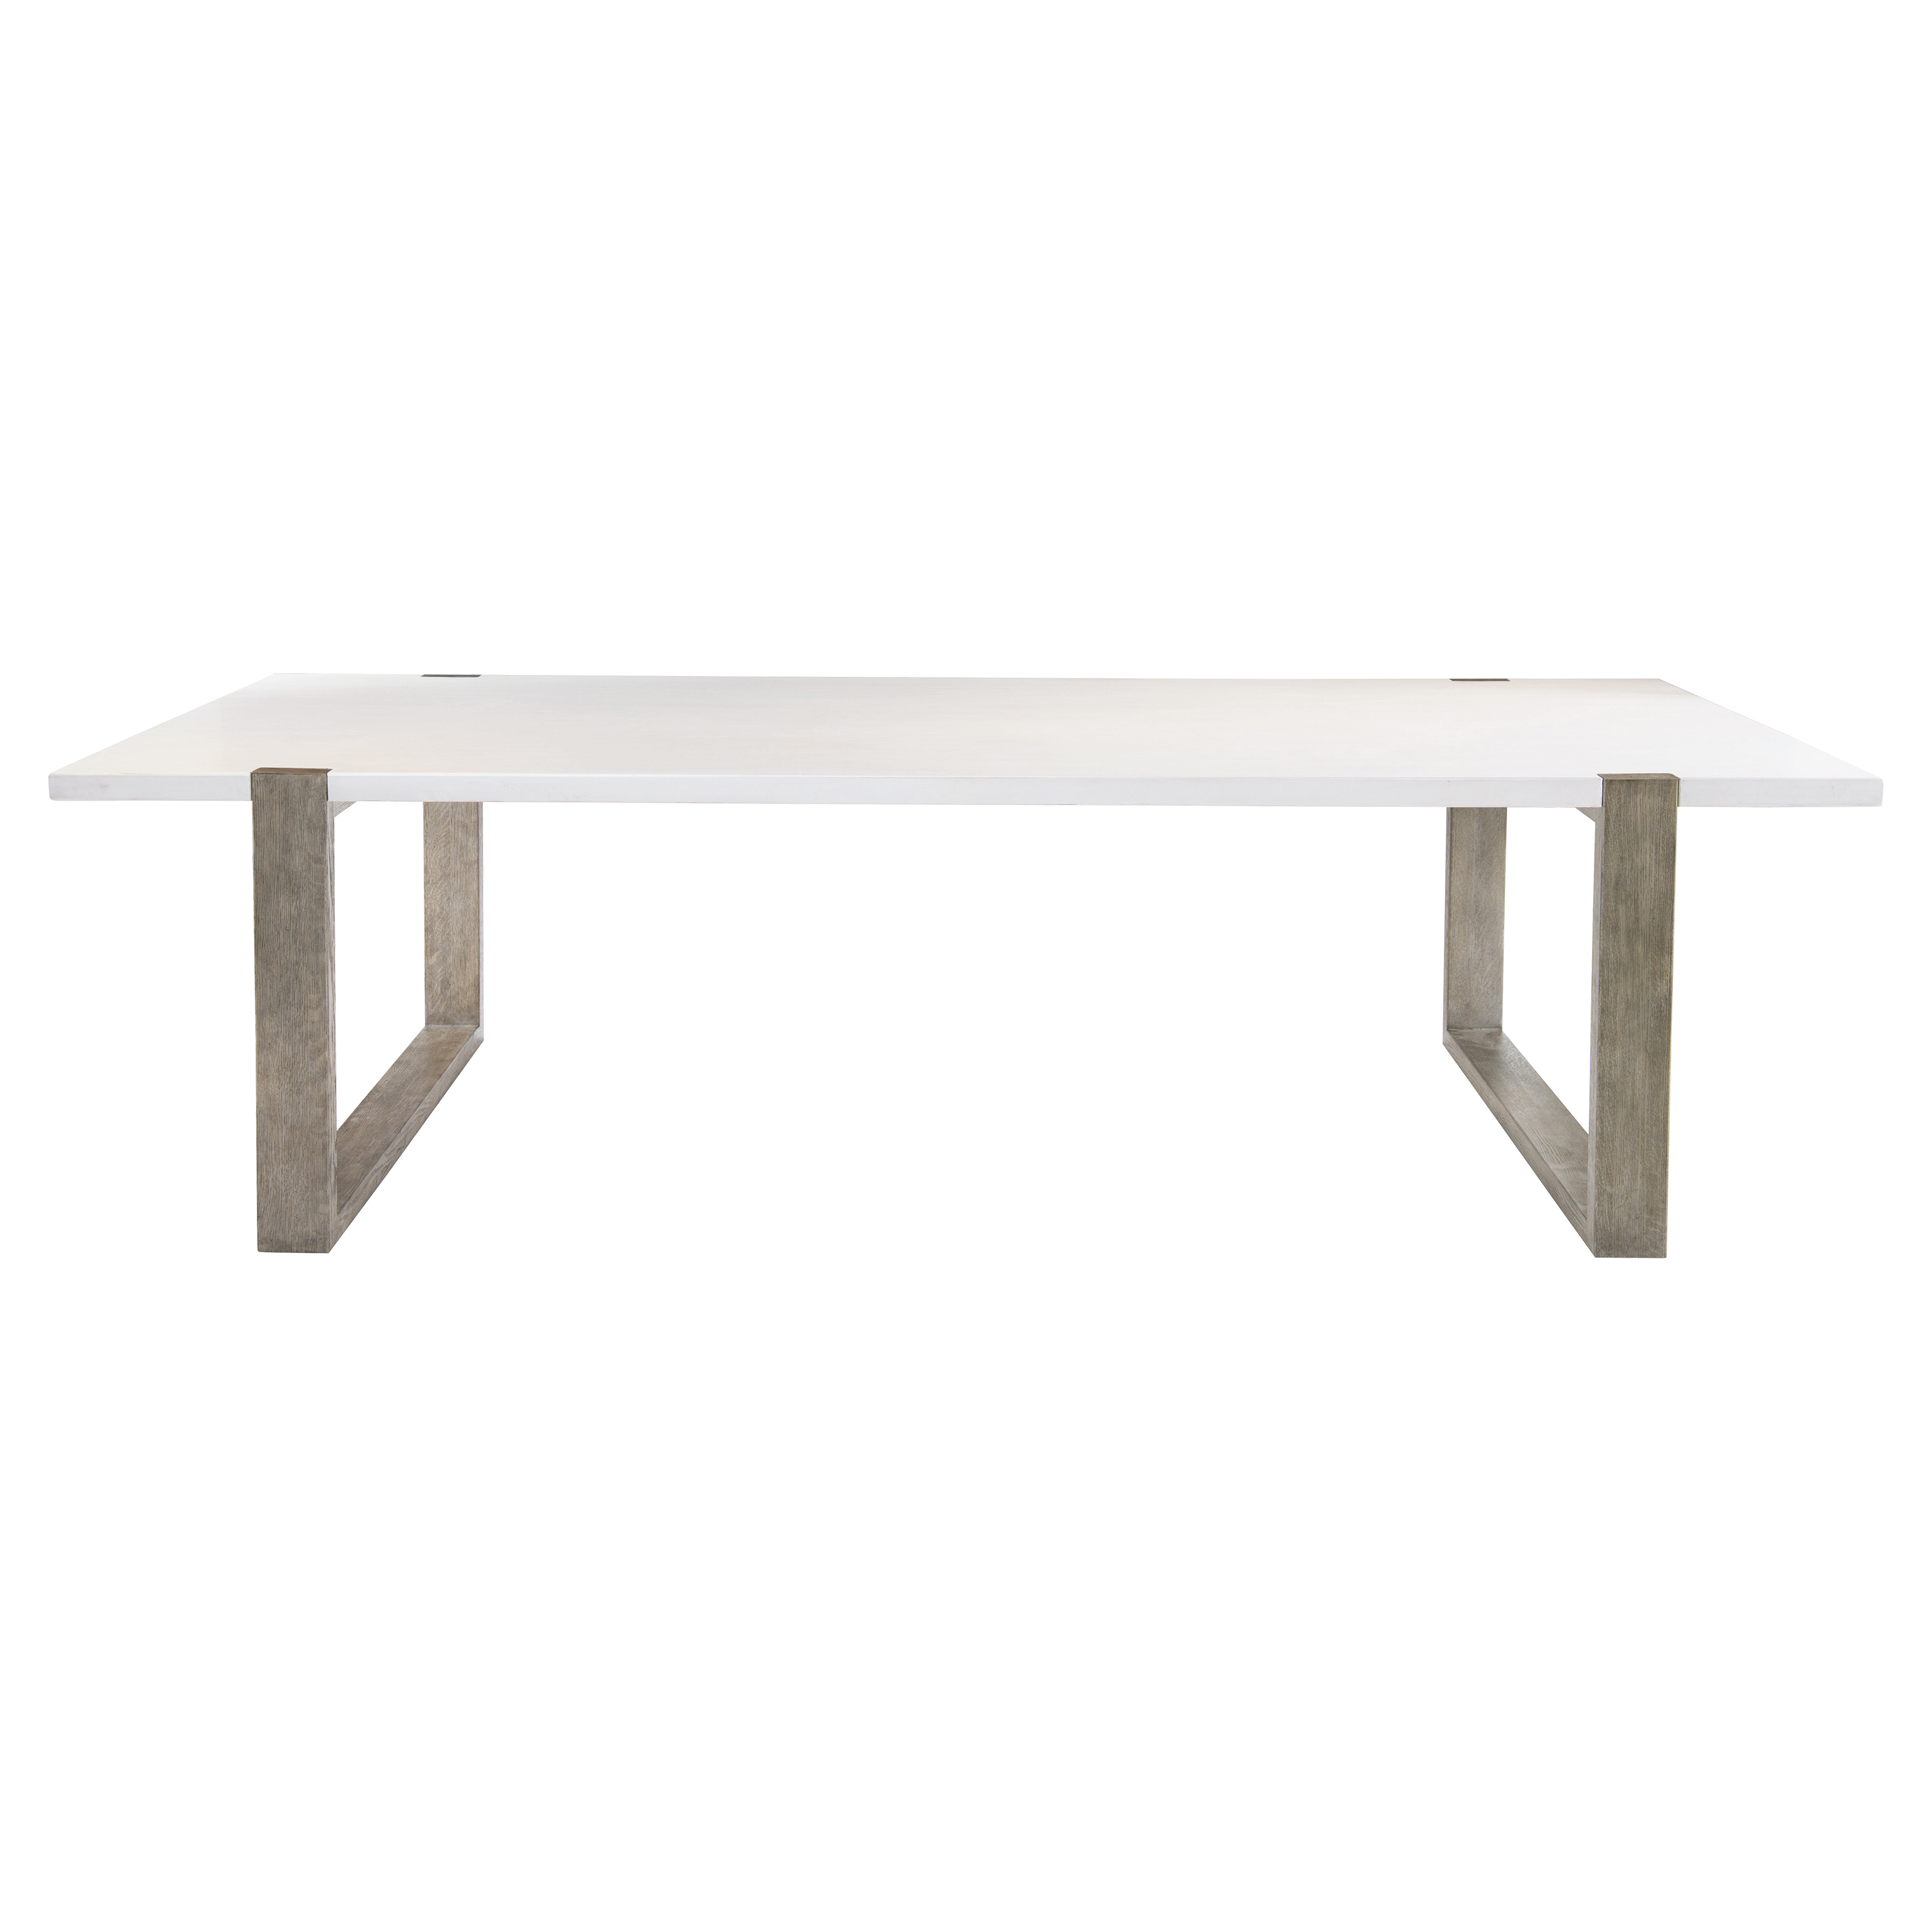 Vick Modern Industrial Grey Wood White Plaster Dining Table